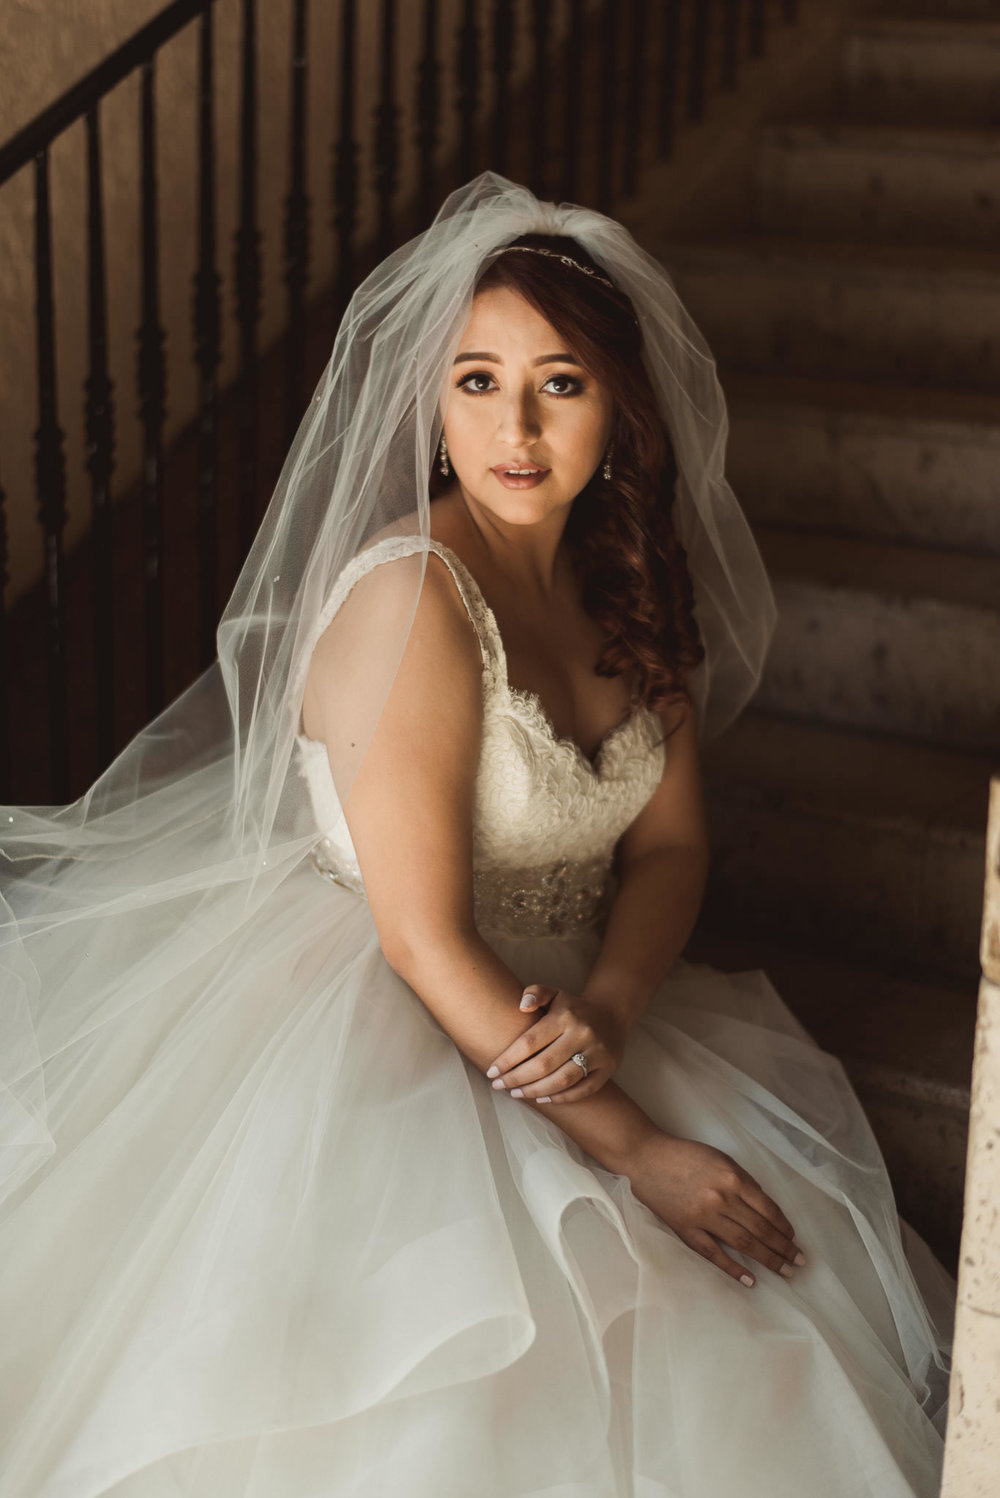 stephanie-bridal-sm-25.jpg